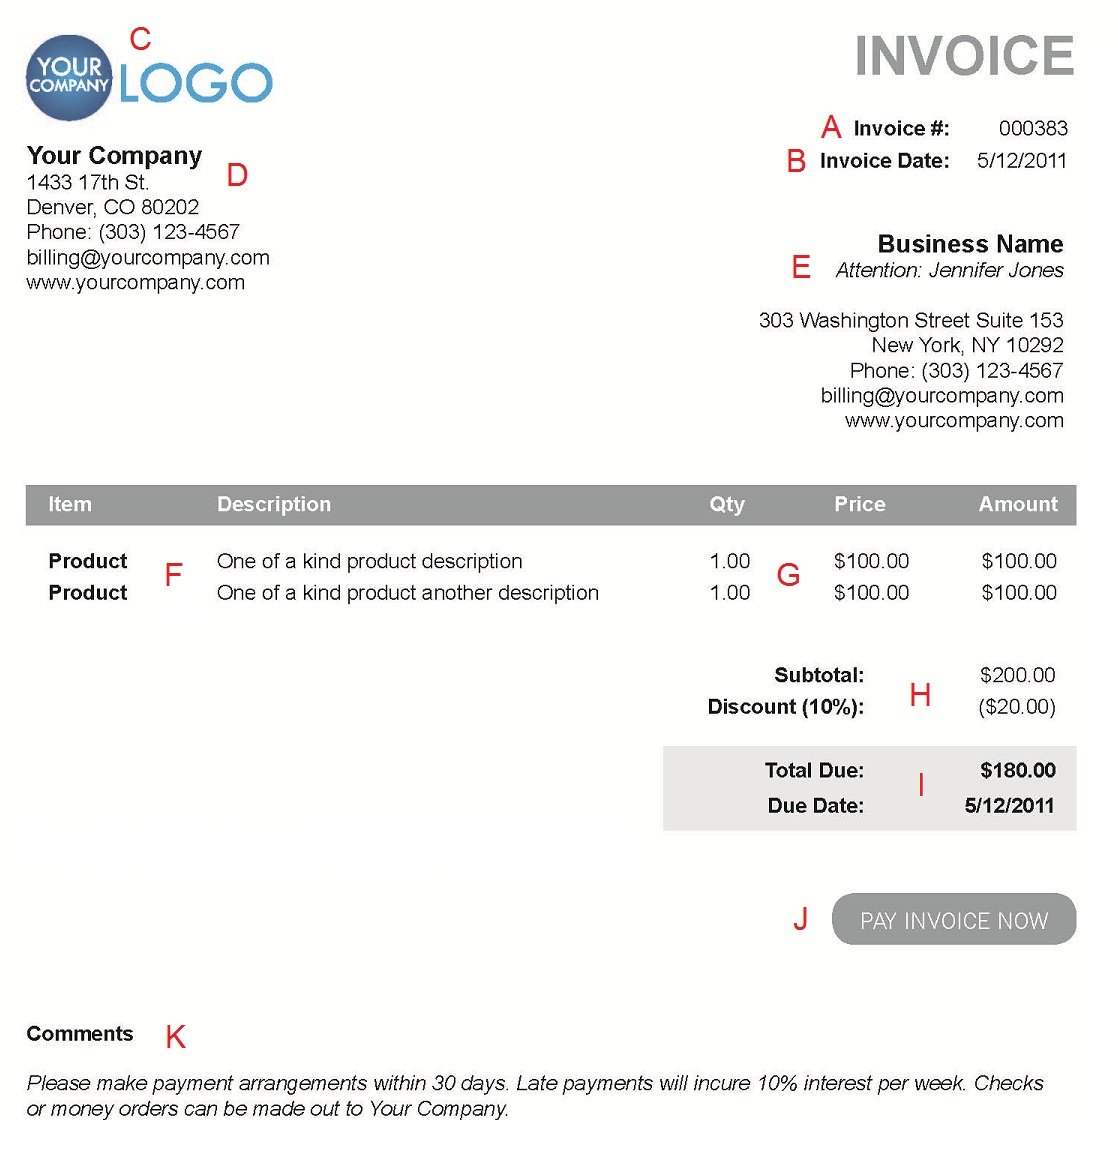 Opposenewapstandardsus  Nice The  Different Sections Of An Electronic Payment Invoice With Marvelous A  With Agreeable Best Invoice App For Android Also Honda Accord  Invoice Price In Addition Best Online Invoicing And Microsoft Word  Invoice Template As Well As Paypal Invoice Number Additionally Rent Invoice Sample From Paysimplecom With Opposenewapstandardsus  Marvelous The  Different Sections Of An Electronic Payment Invoice With Agreeable A  And Nice Best Invoice App For Android Also Honda Accord  Invoice Price In Addition Best Online Invoicing From Paysimplecom